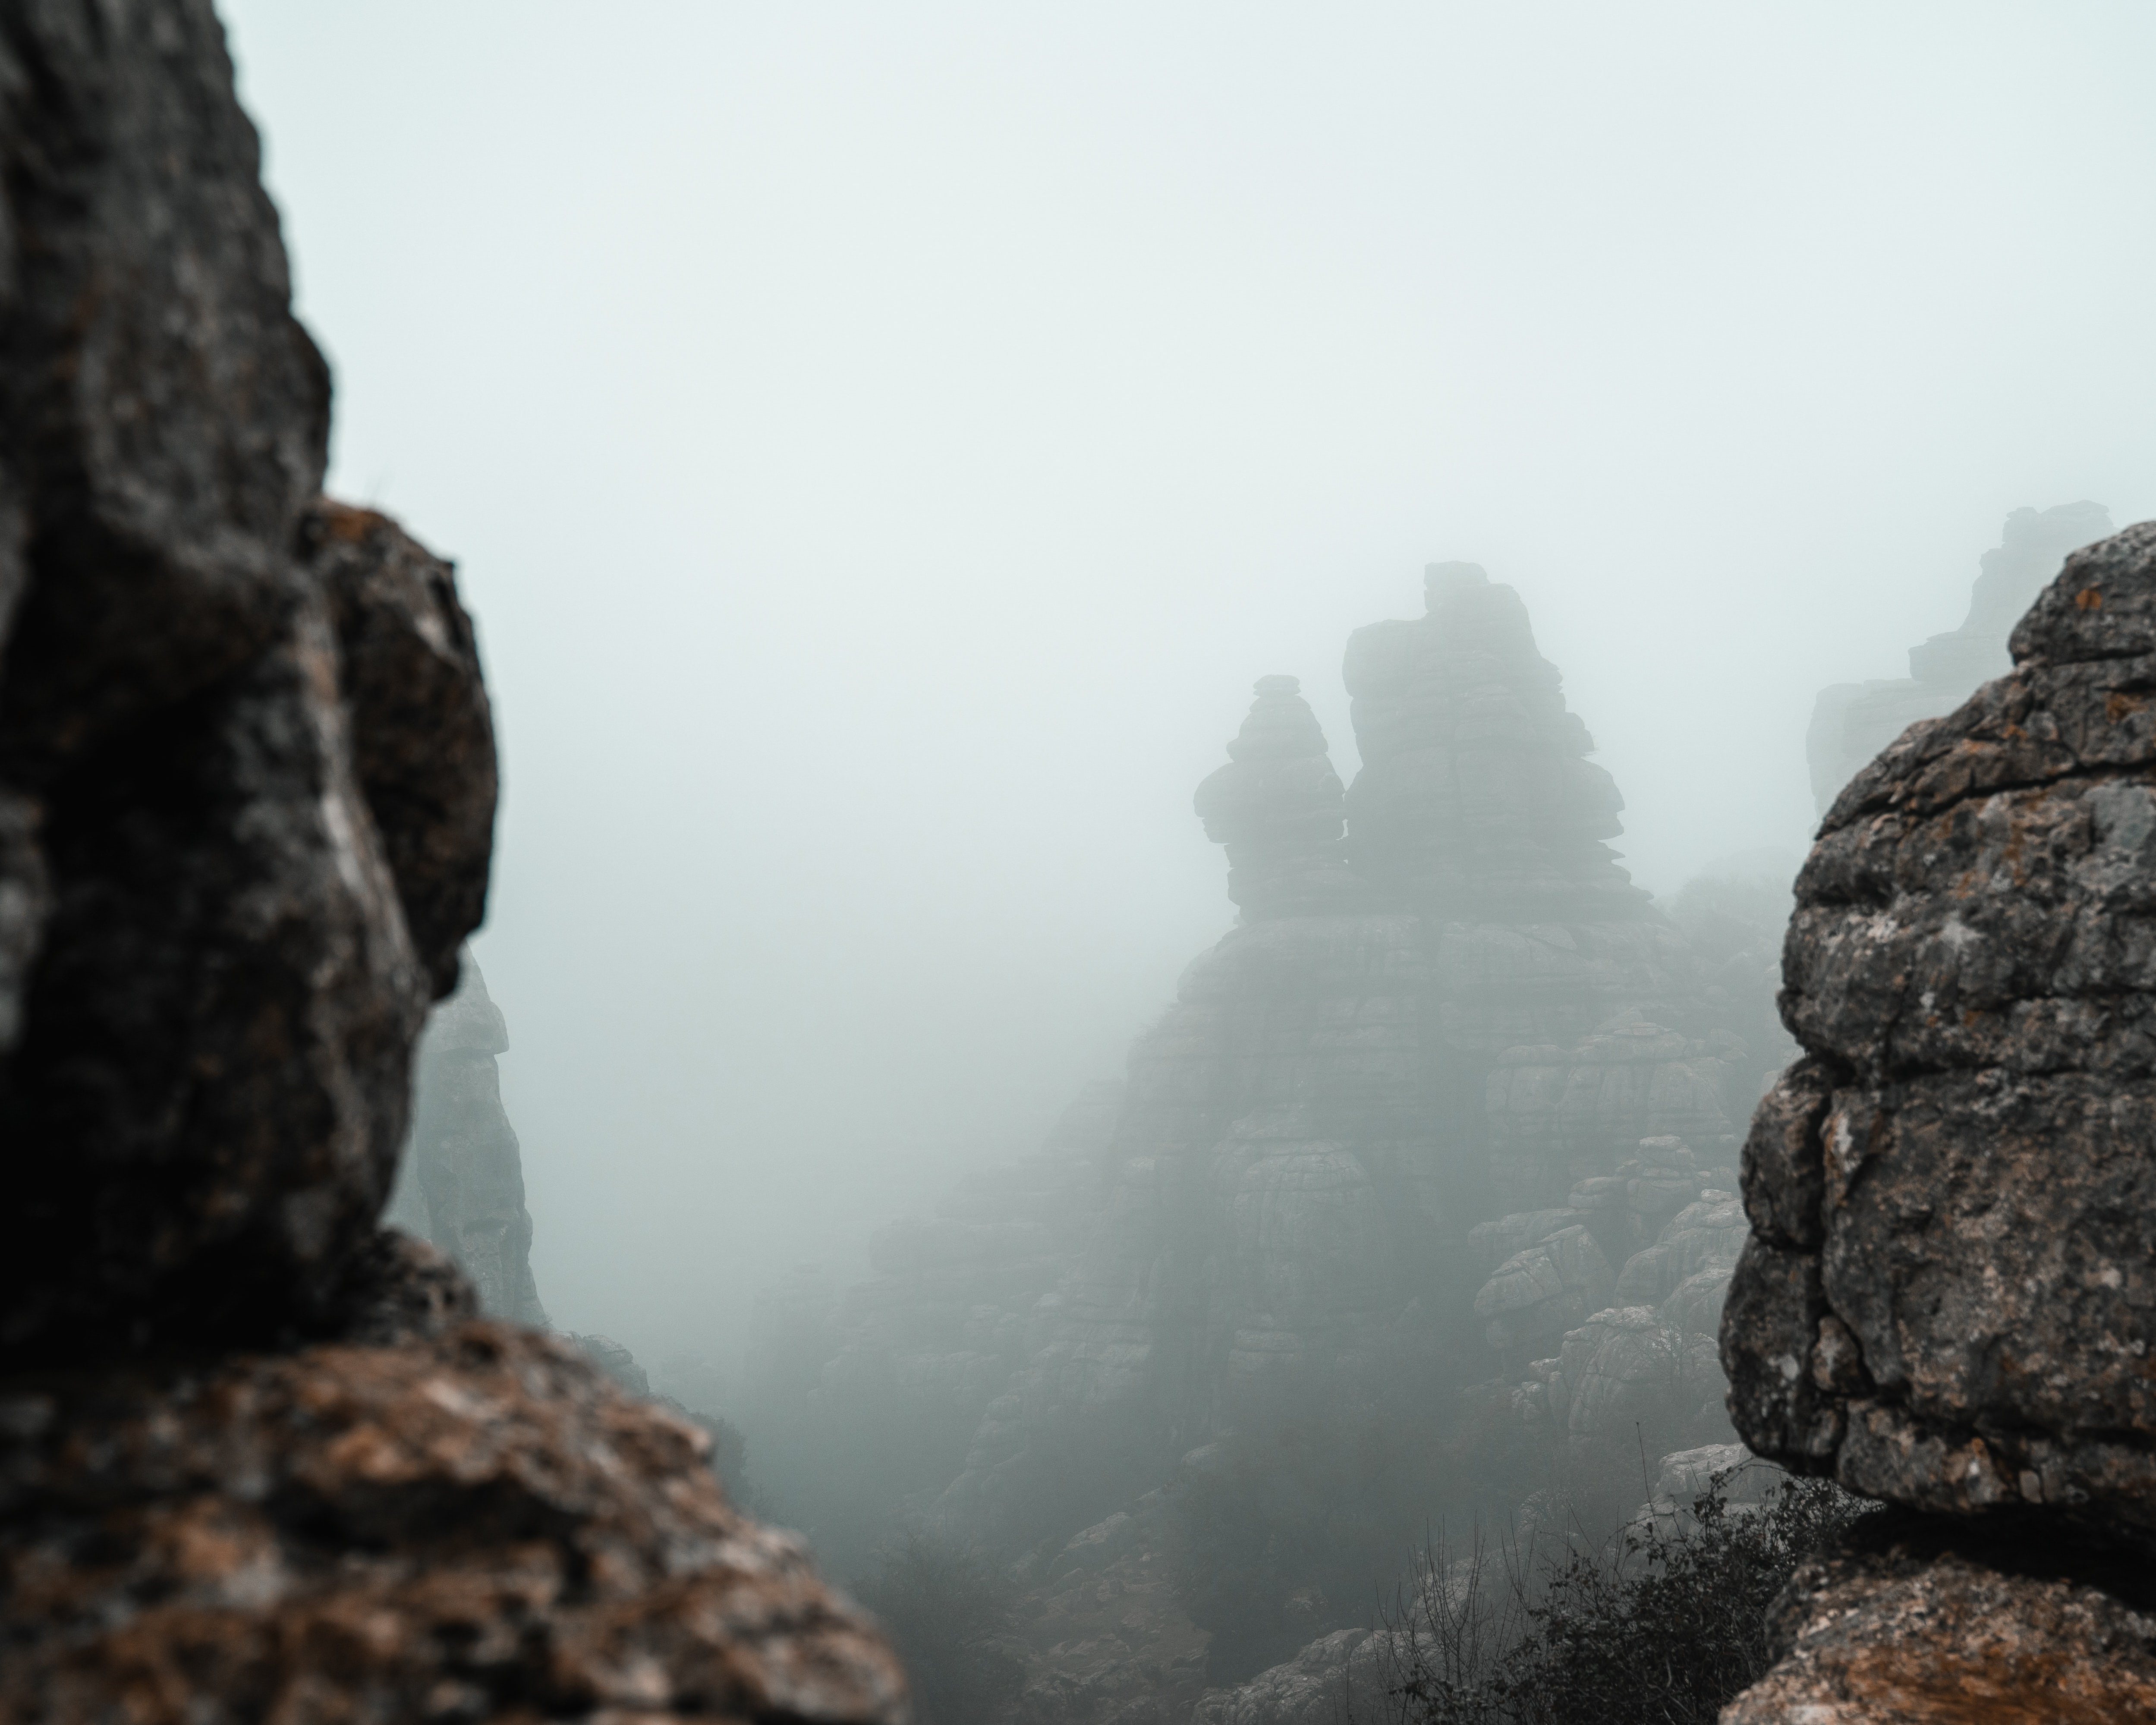 rocky mountain under foggy weather